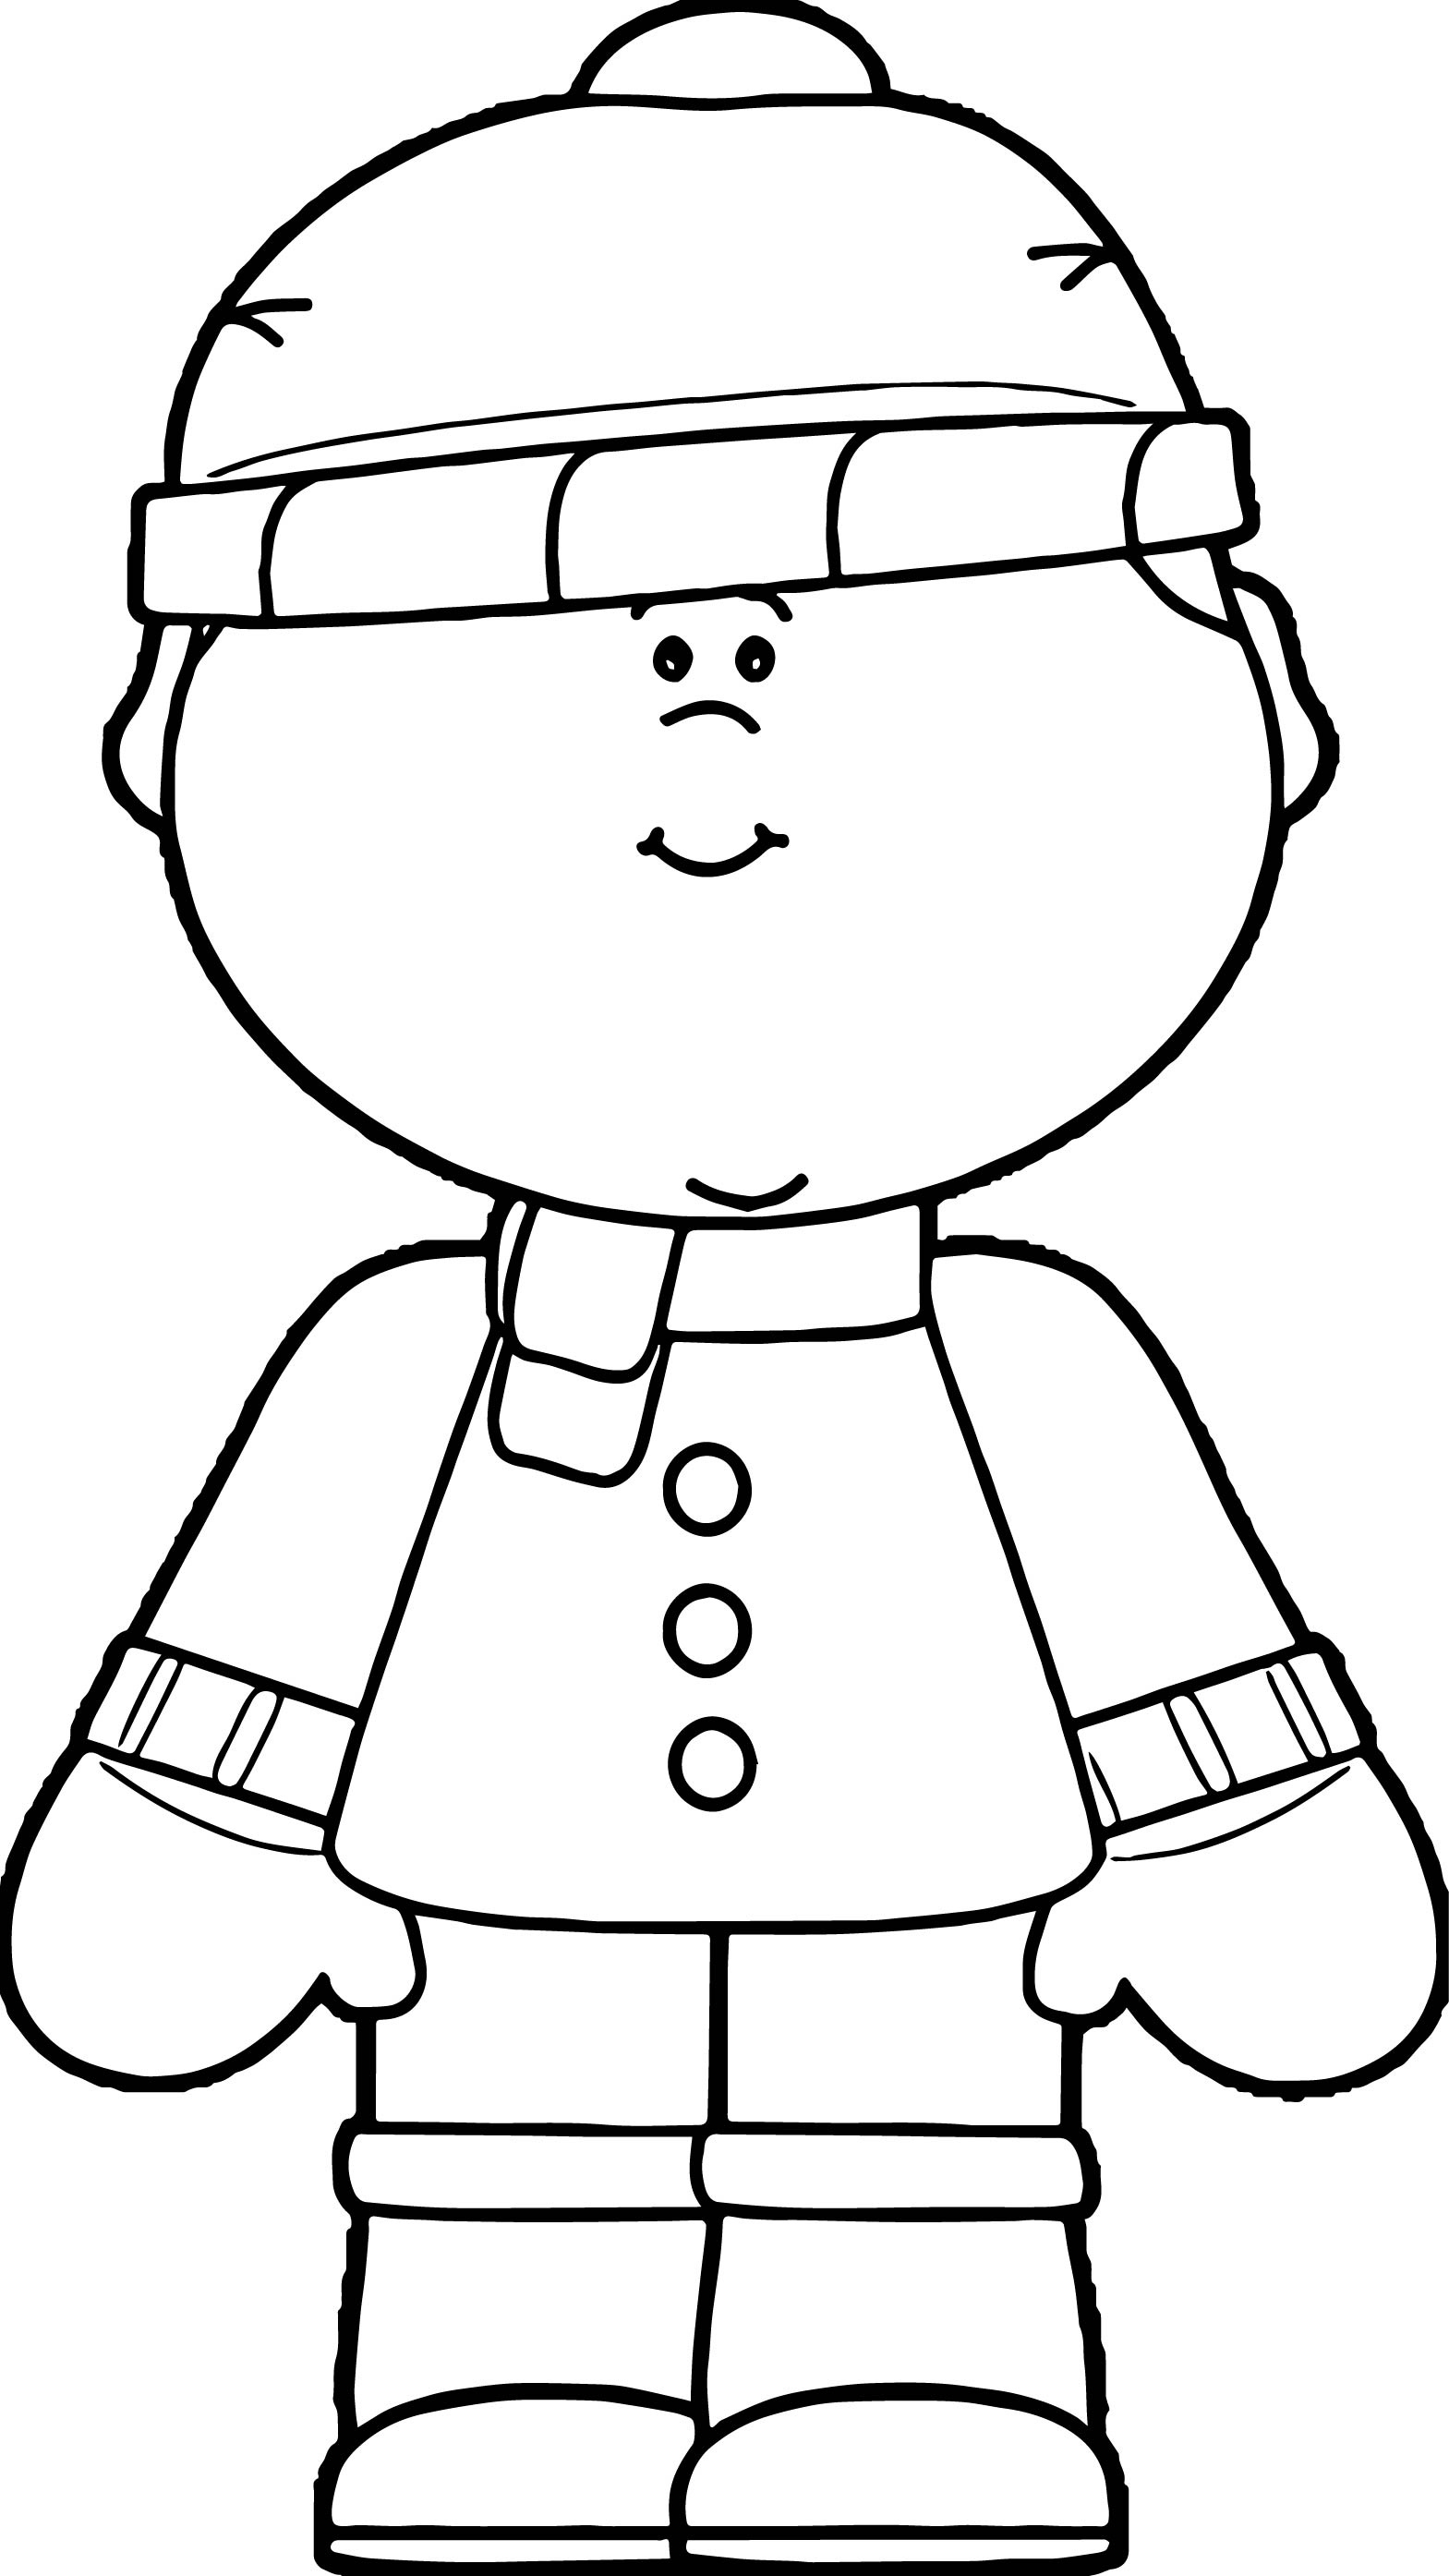 boy dressed in winter clothing coloring page wecoloringpage